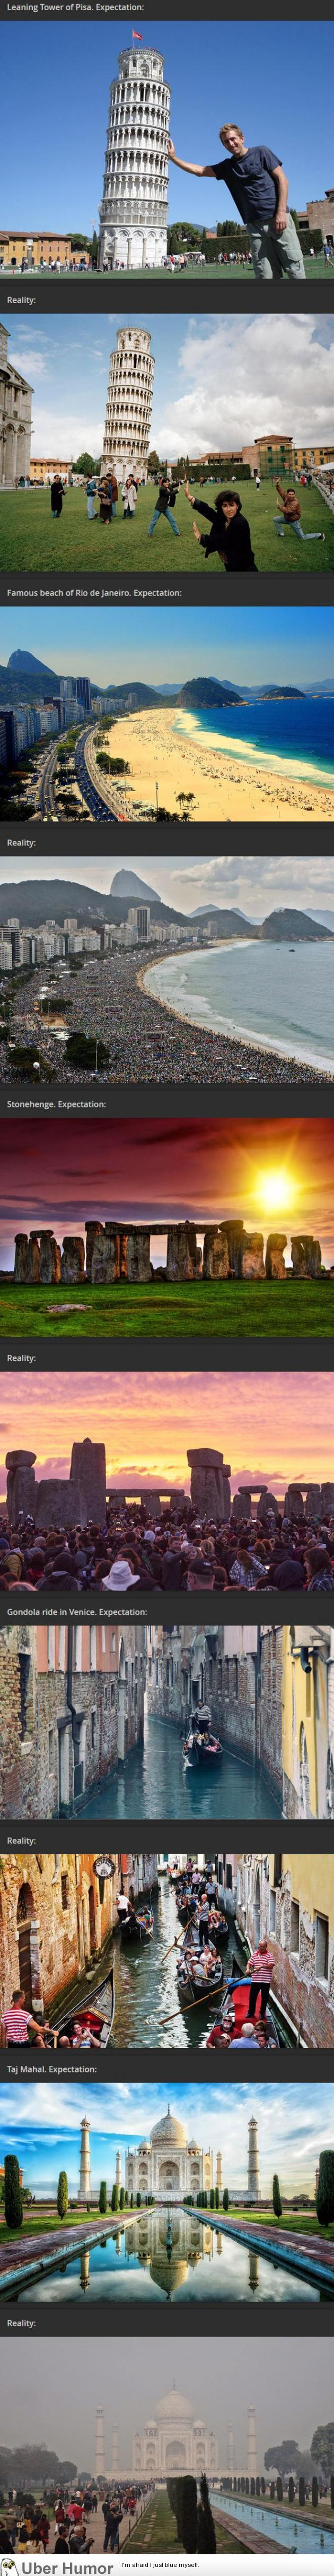 Travel expectations VS Reality by uberHumor.com | Find more interesting stories on the web here → http://curated.fyi/